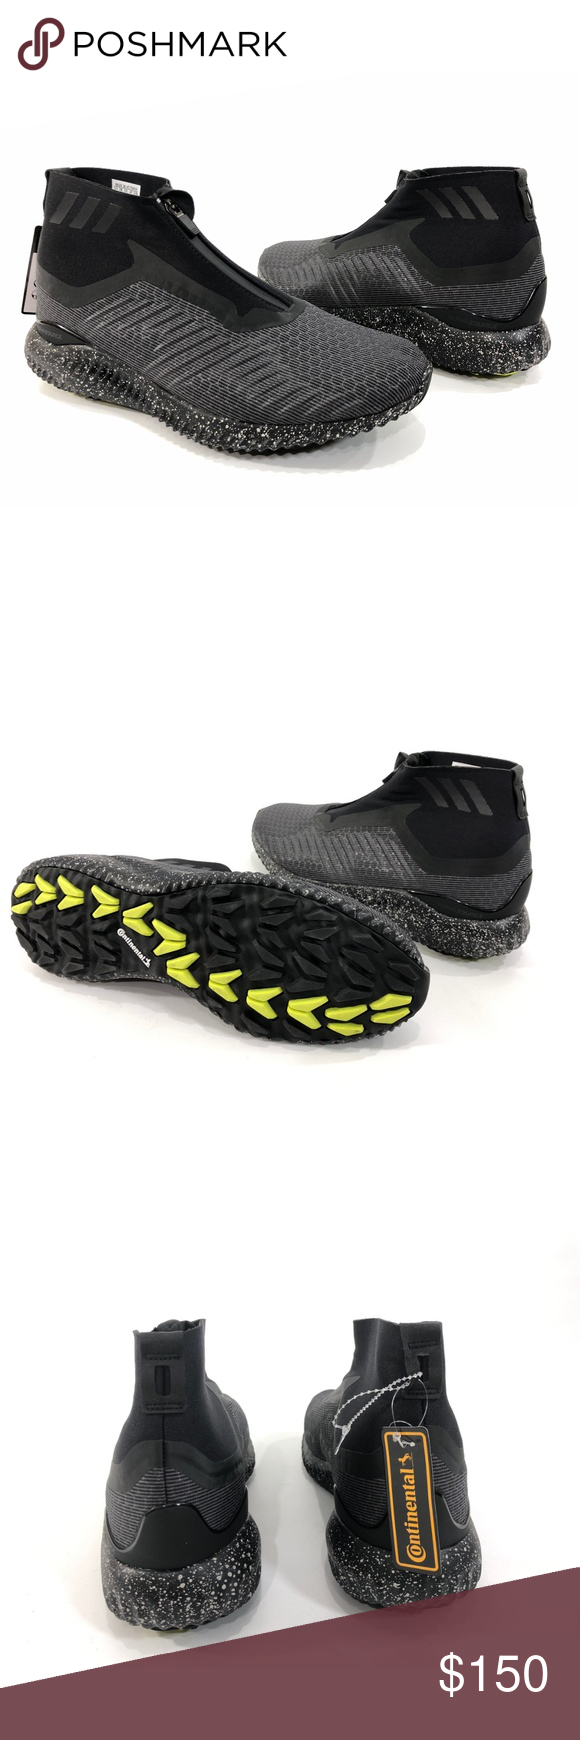 d736cd970 Adidas Alphabounce 5.8 Men s Zip Running Shoes ADIDAS BW1386 adidas  AlphaBounce Men s running shoes Size 10 Black   White High top New without  box 33A911 ...